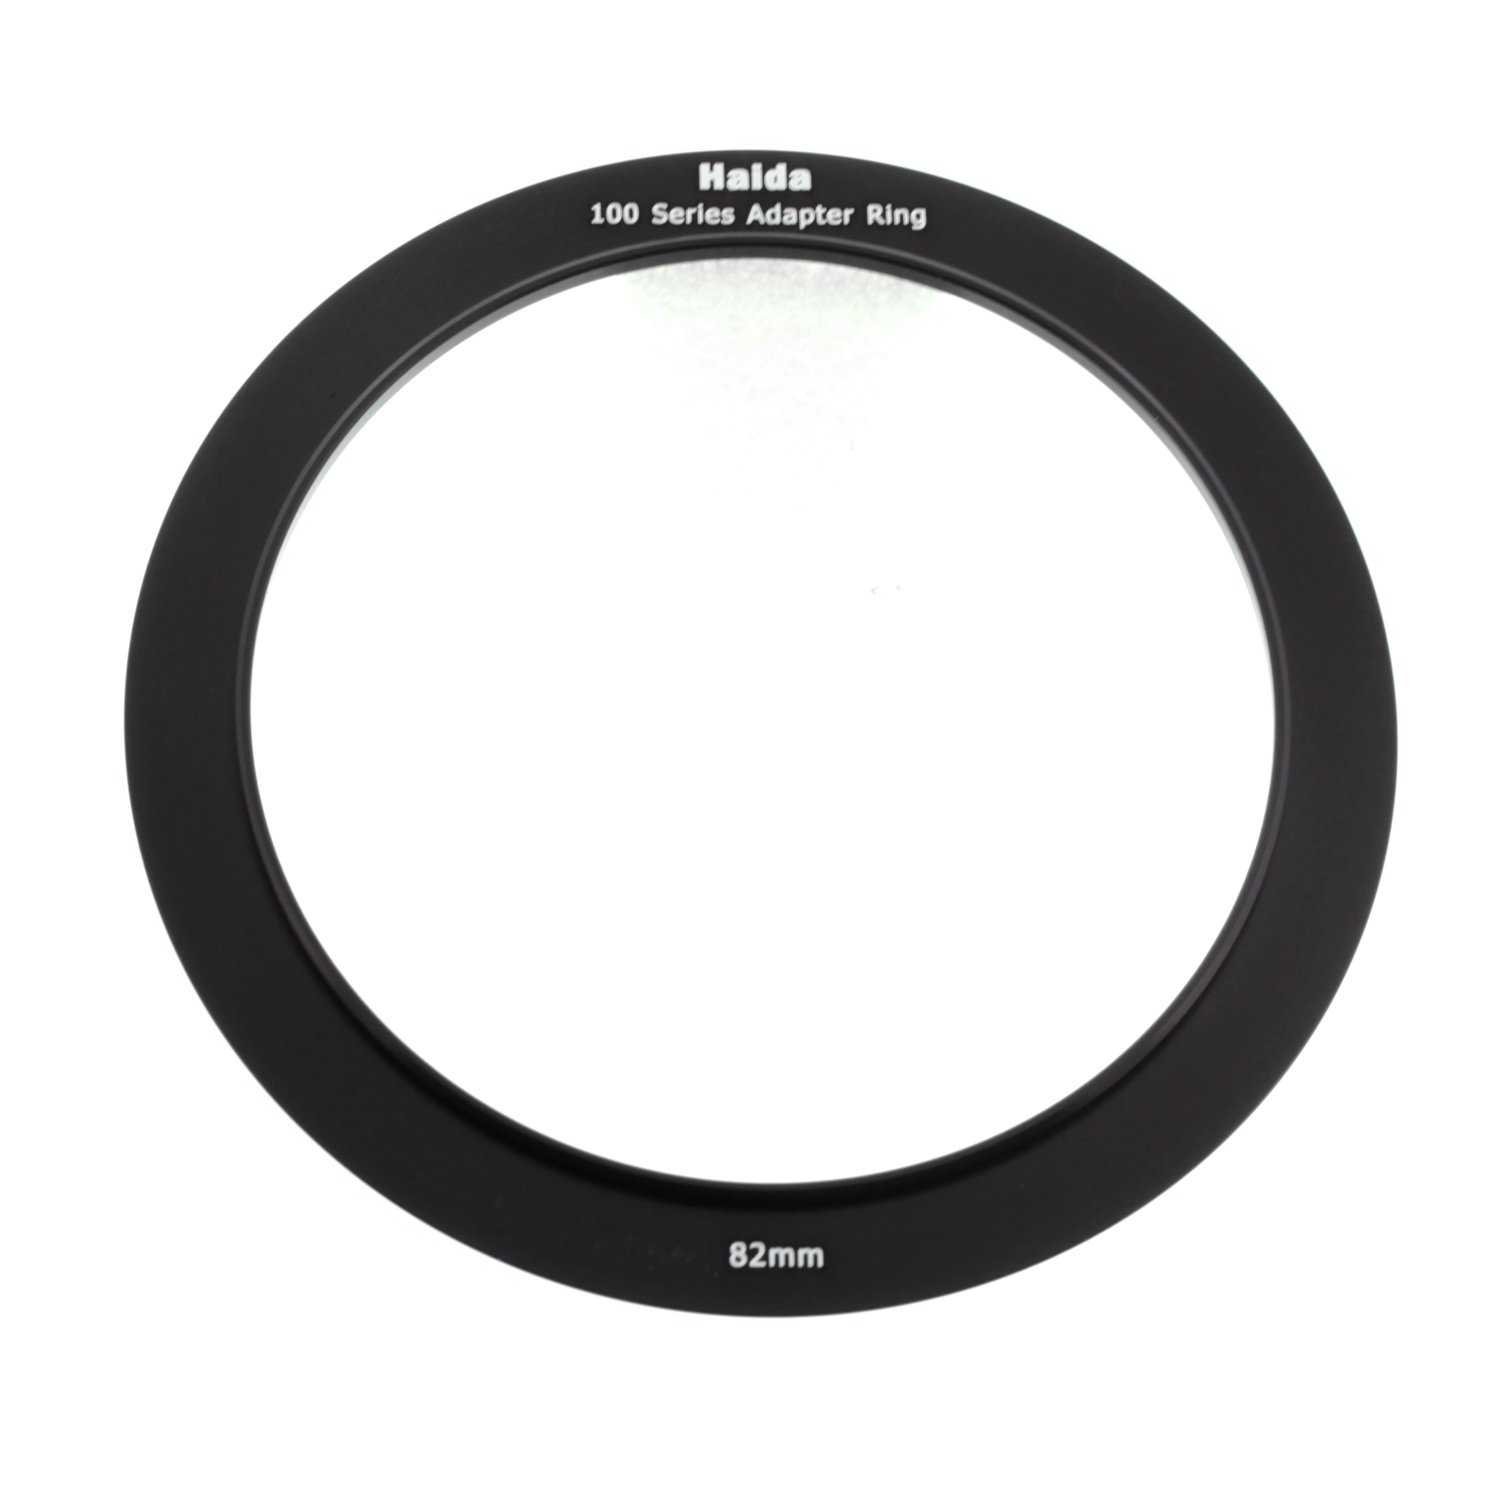 Haida 82mm Metal Adapter ring for 100 Series Filter Holder